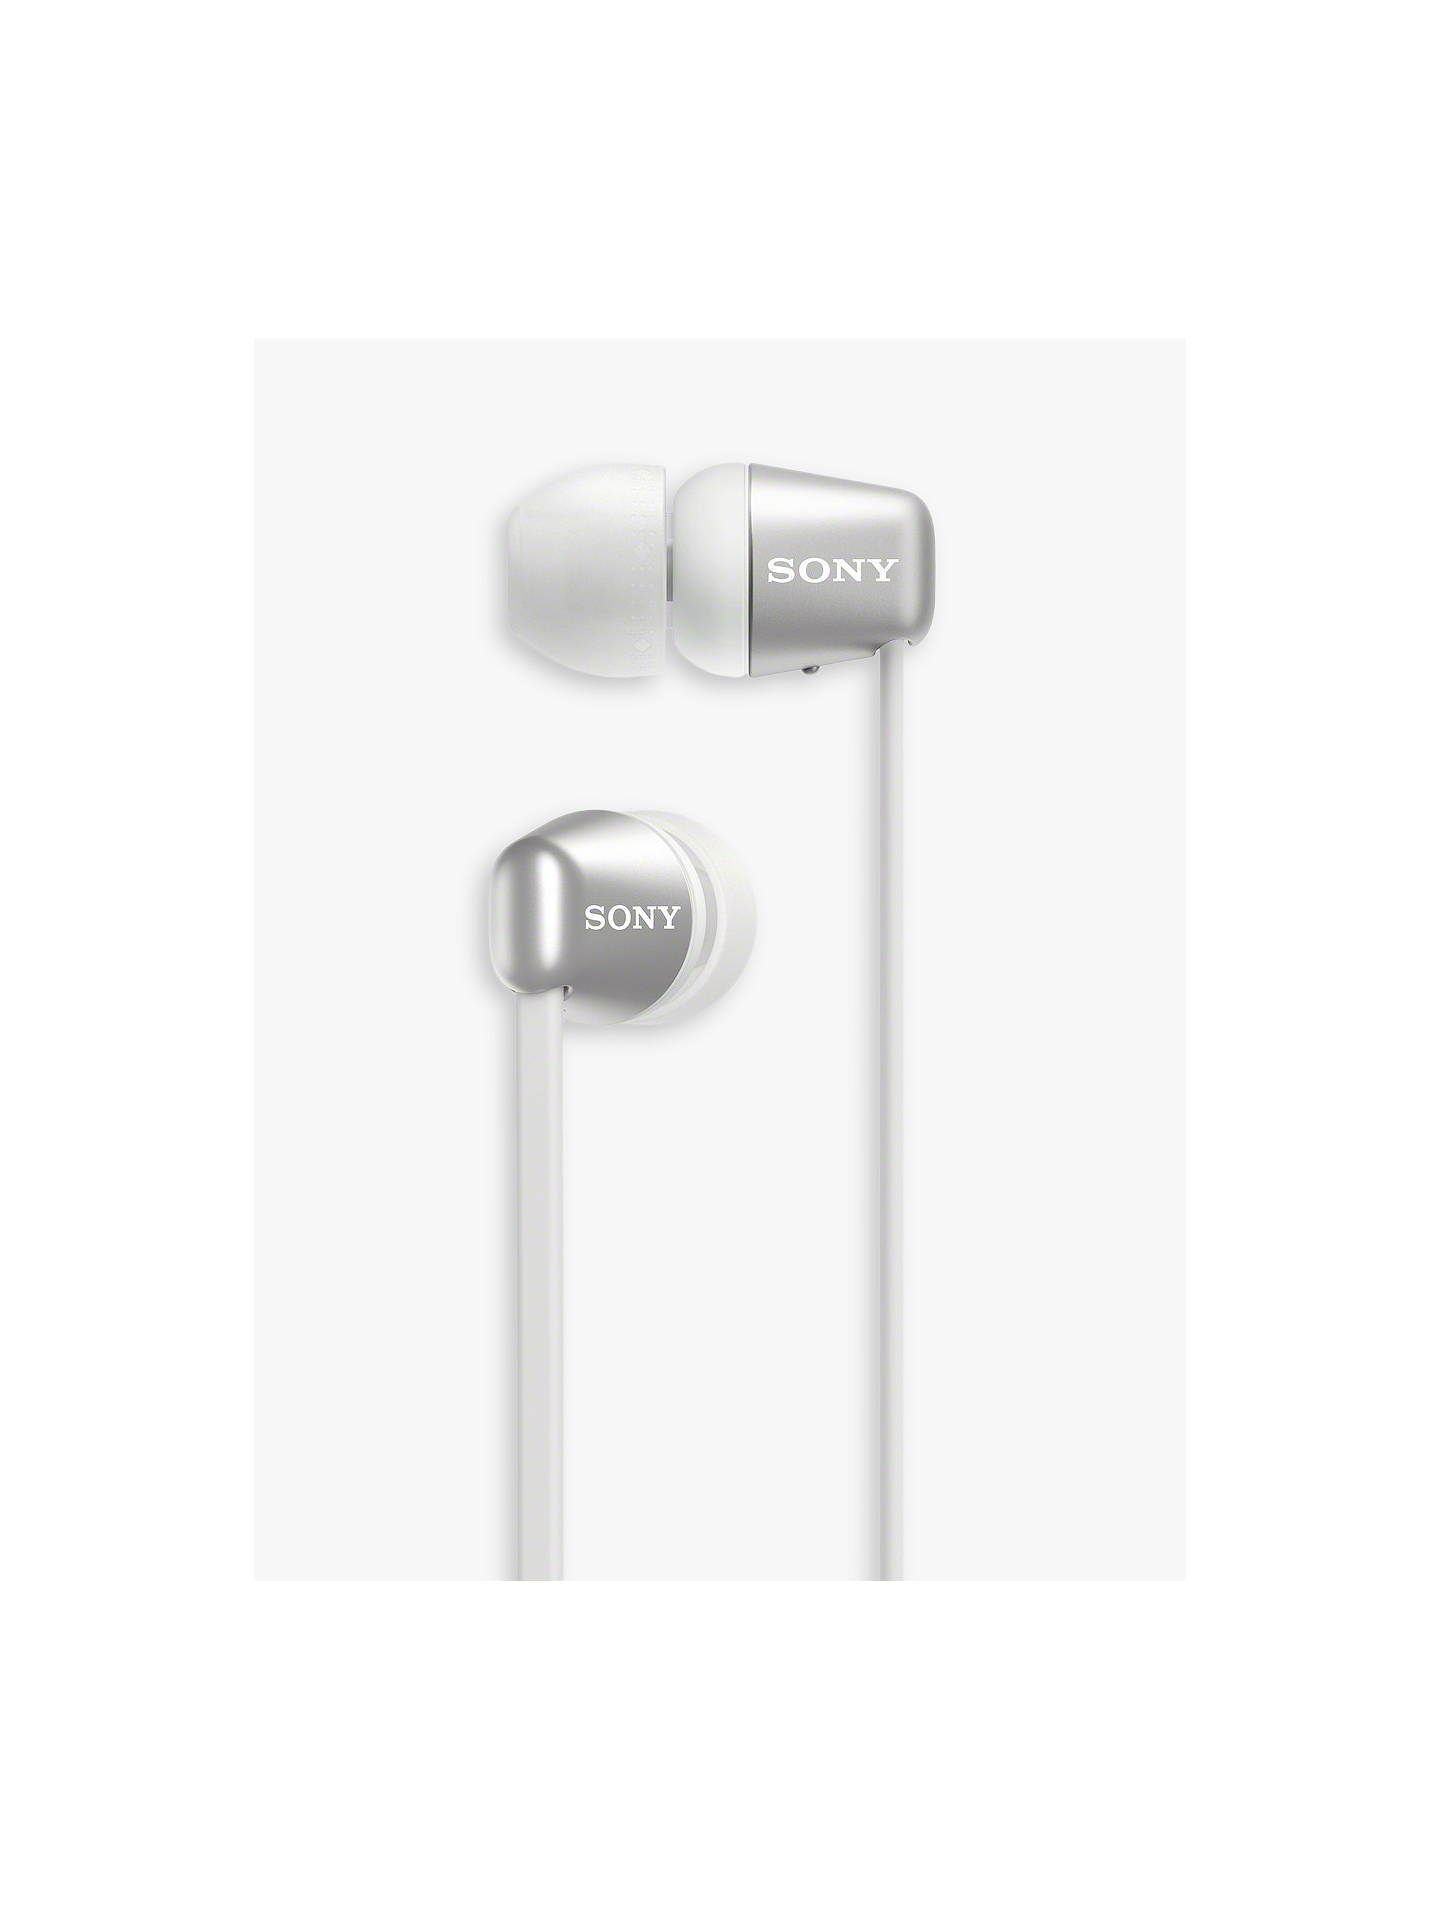 Buy Sony WI-C310 Bluetooth Wireless In-Ear Headphones with Mic/Remote, White Online at johnlewis.com